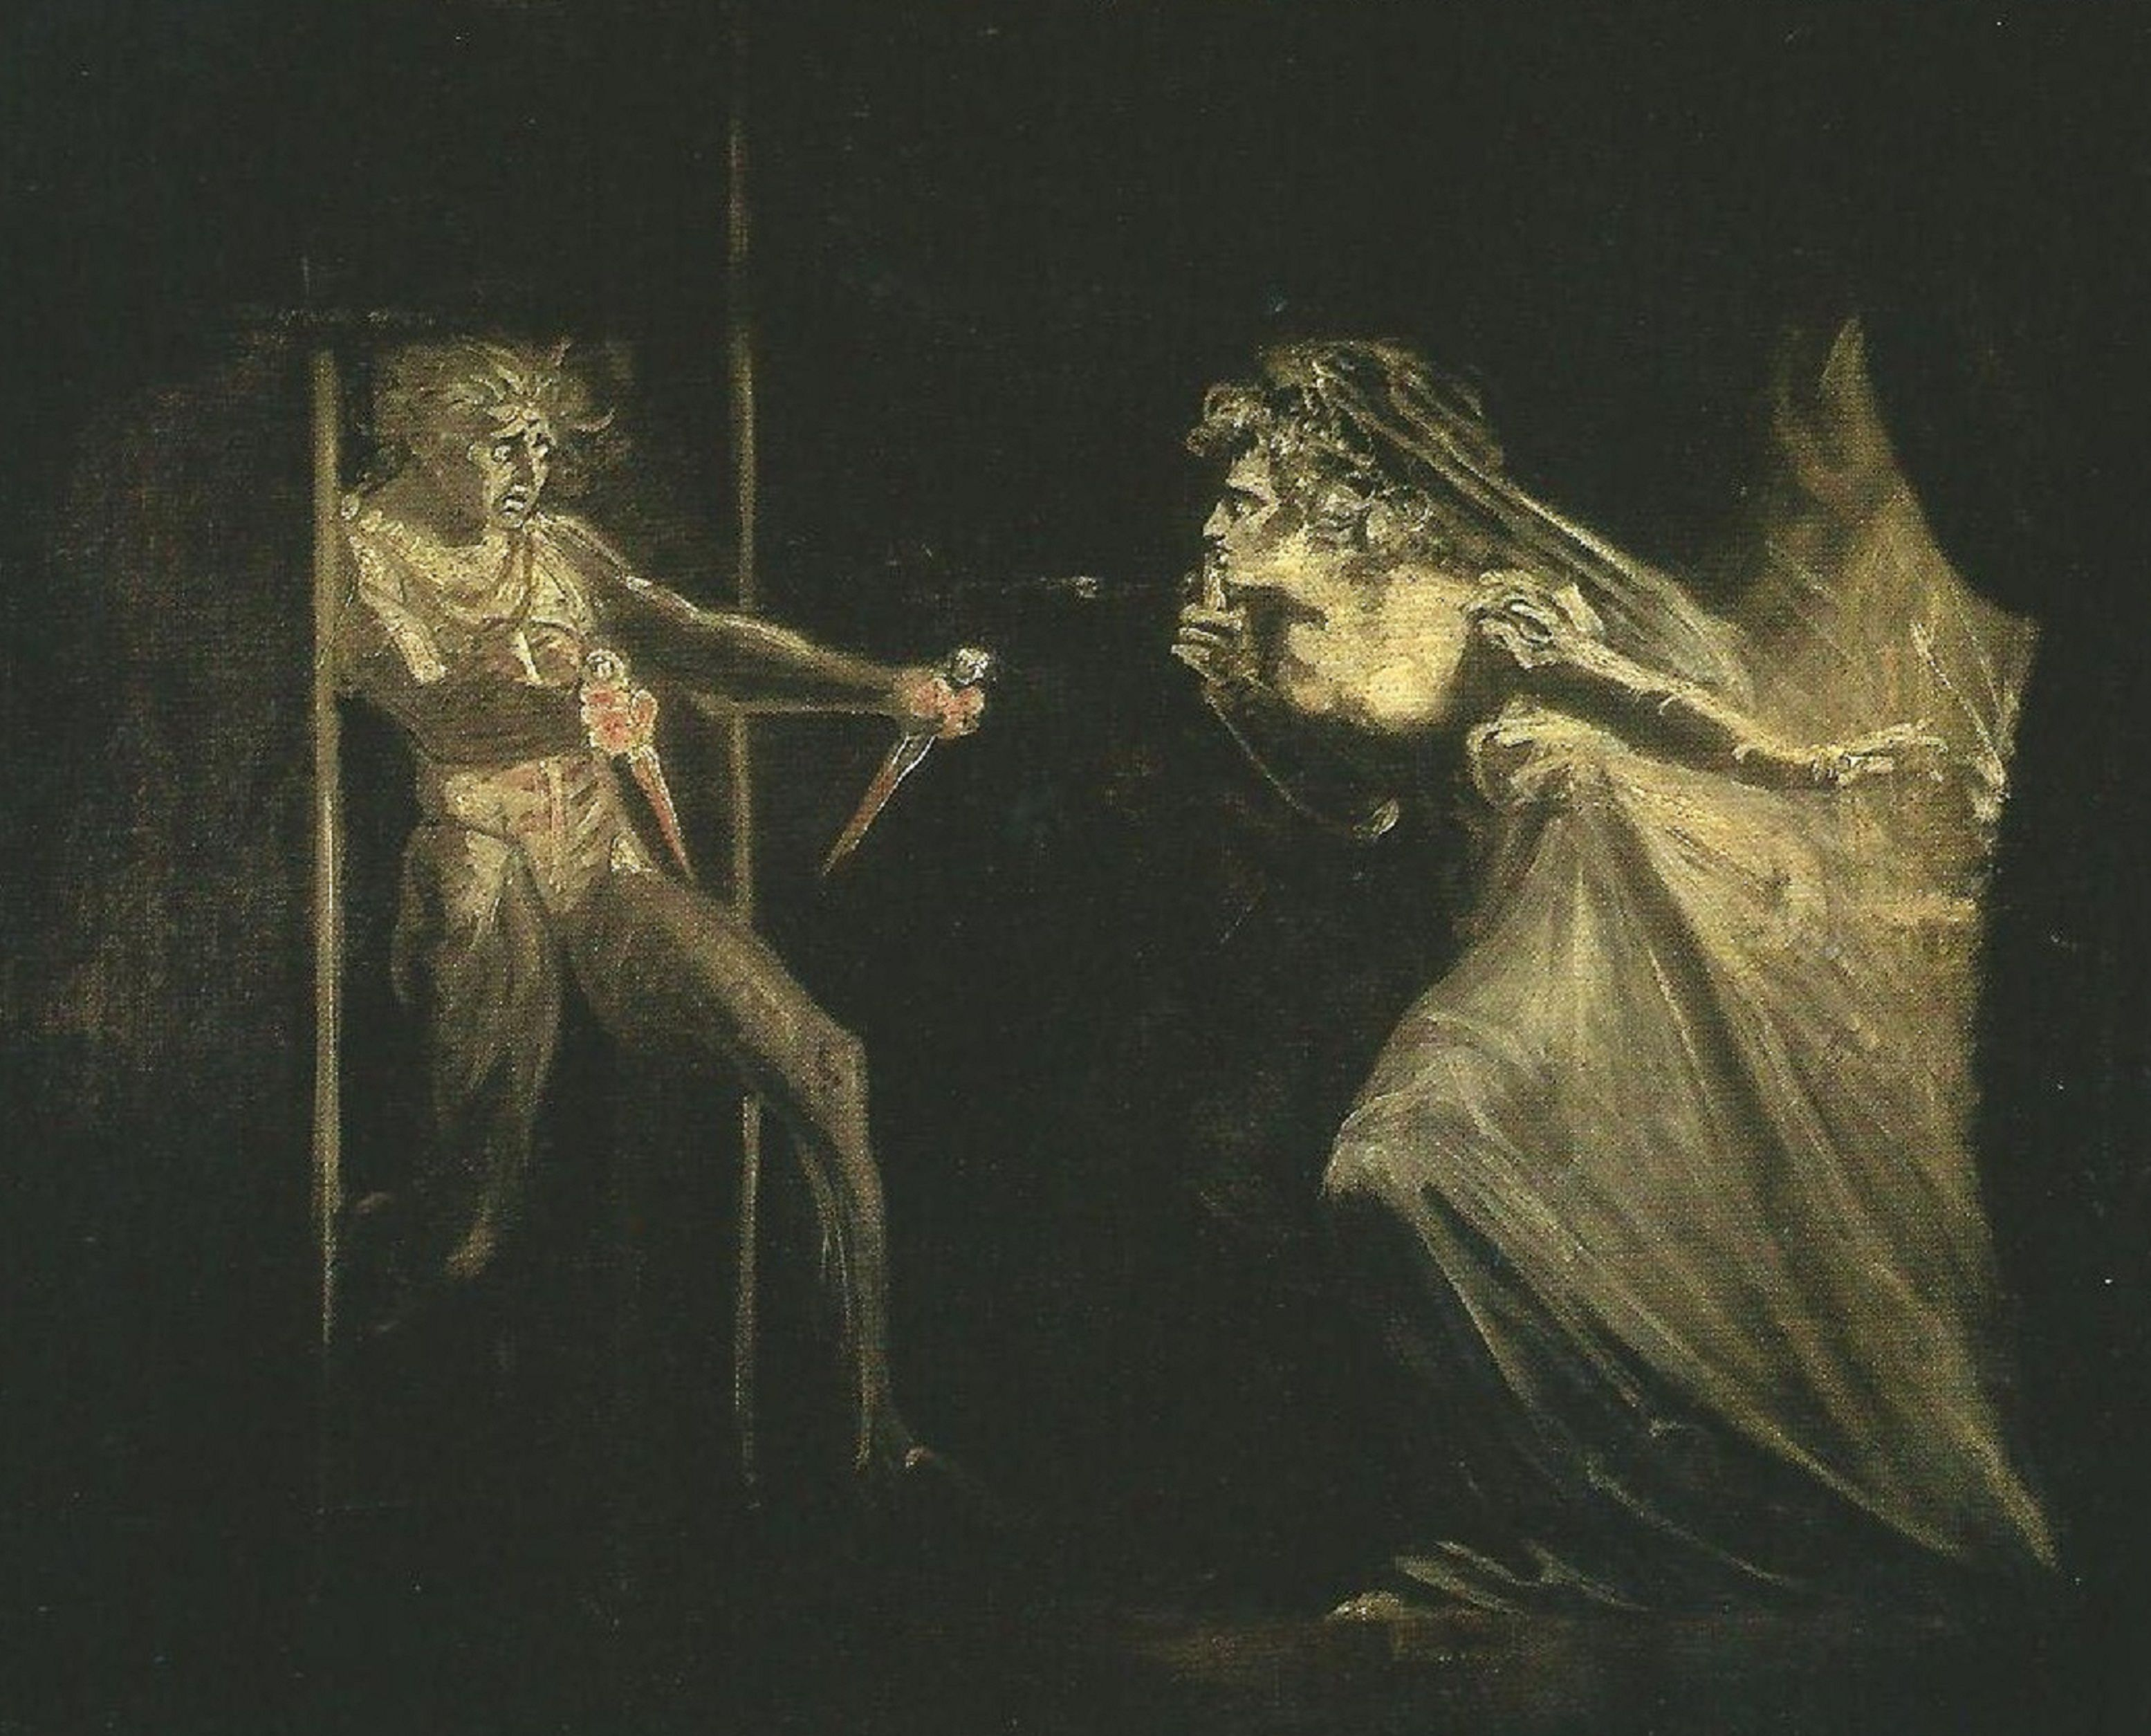 best images about shakespeare the merchant of henry fuseli lady macbeth seizing the daggers 1812 tate gallery